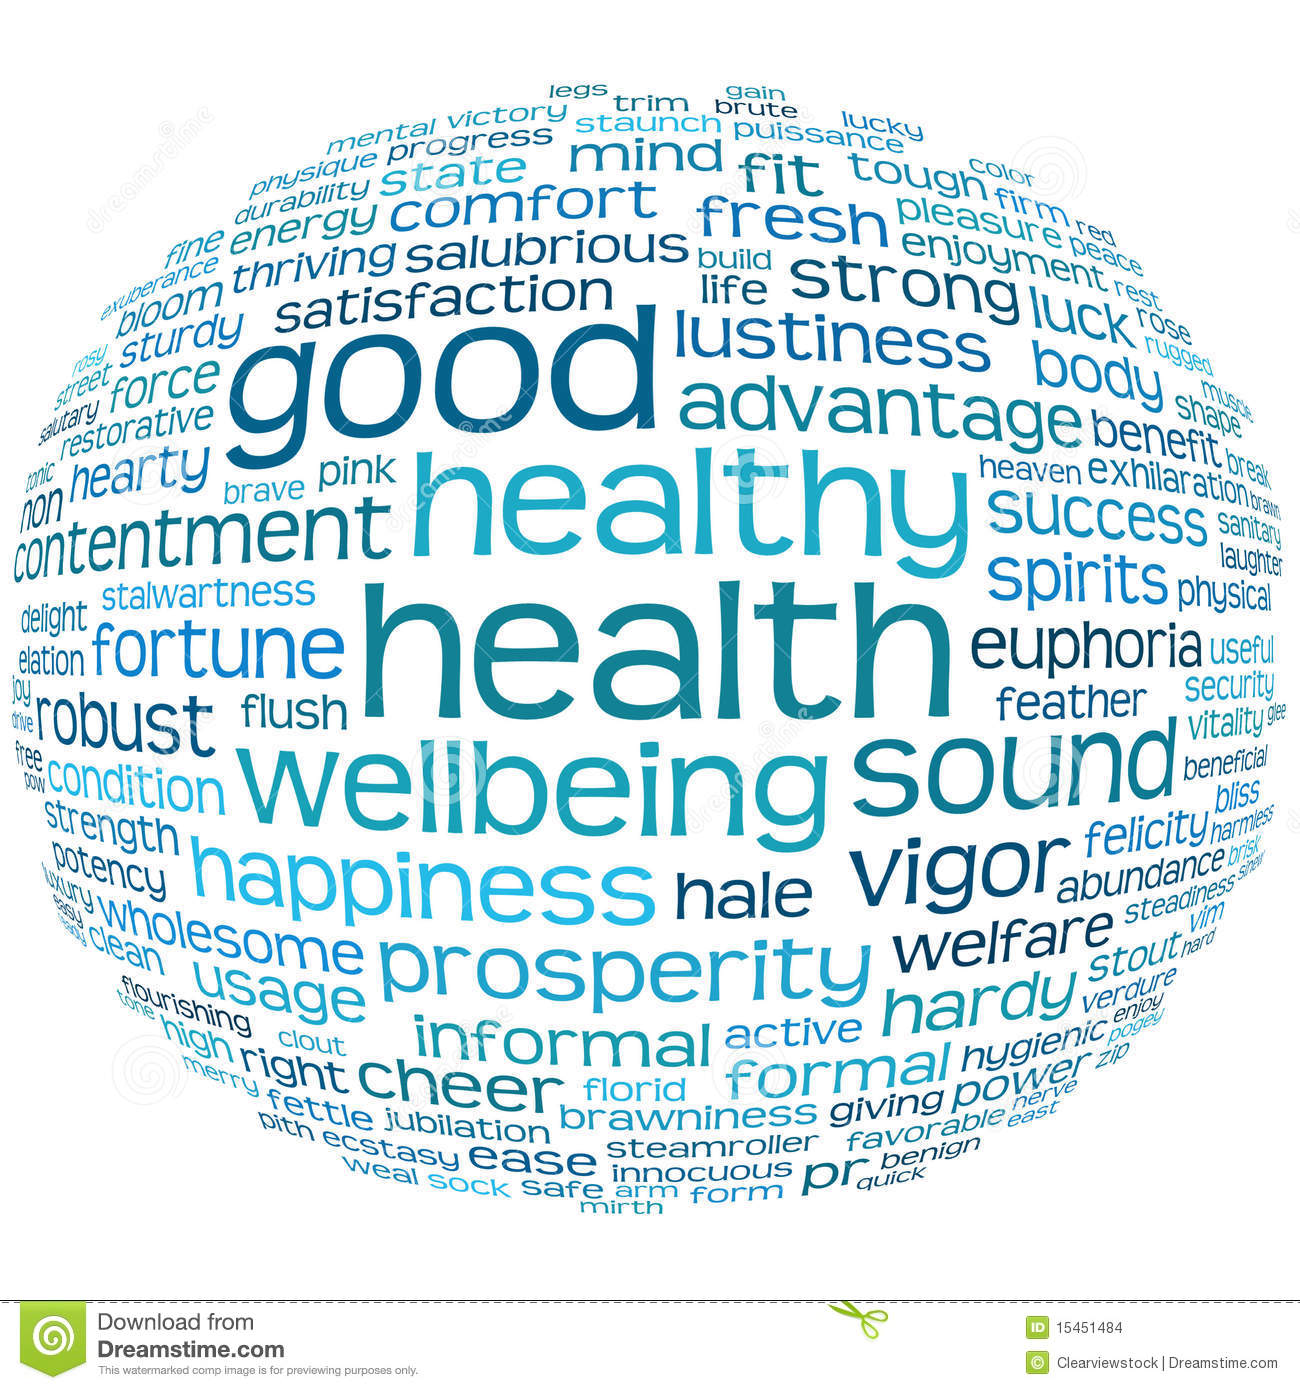 Health And Wellbeing Tag Or Word Cloud Stock Images - Image: 15451484